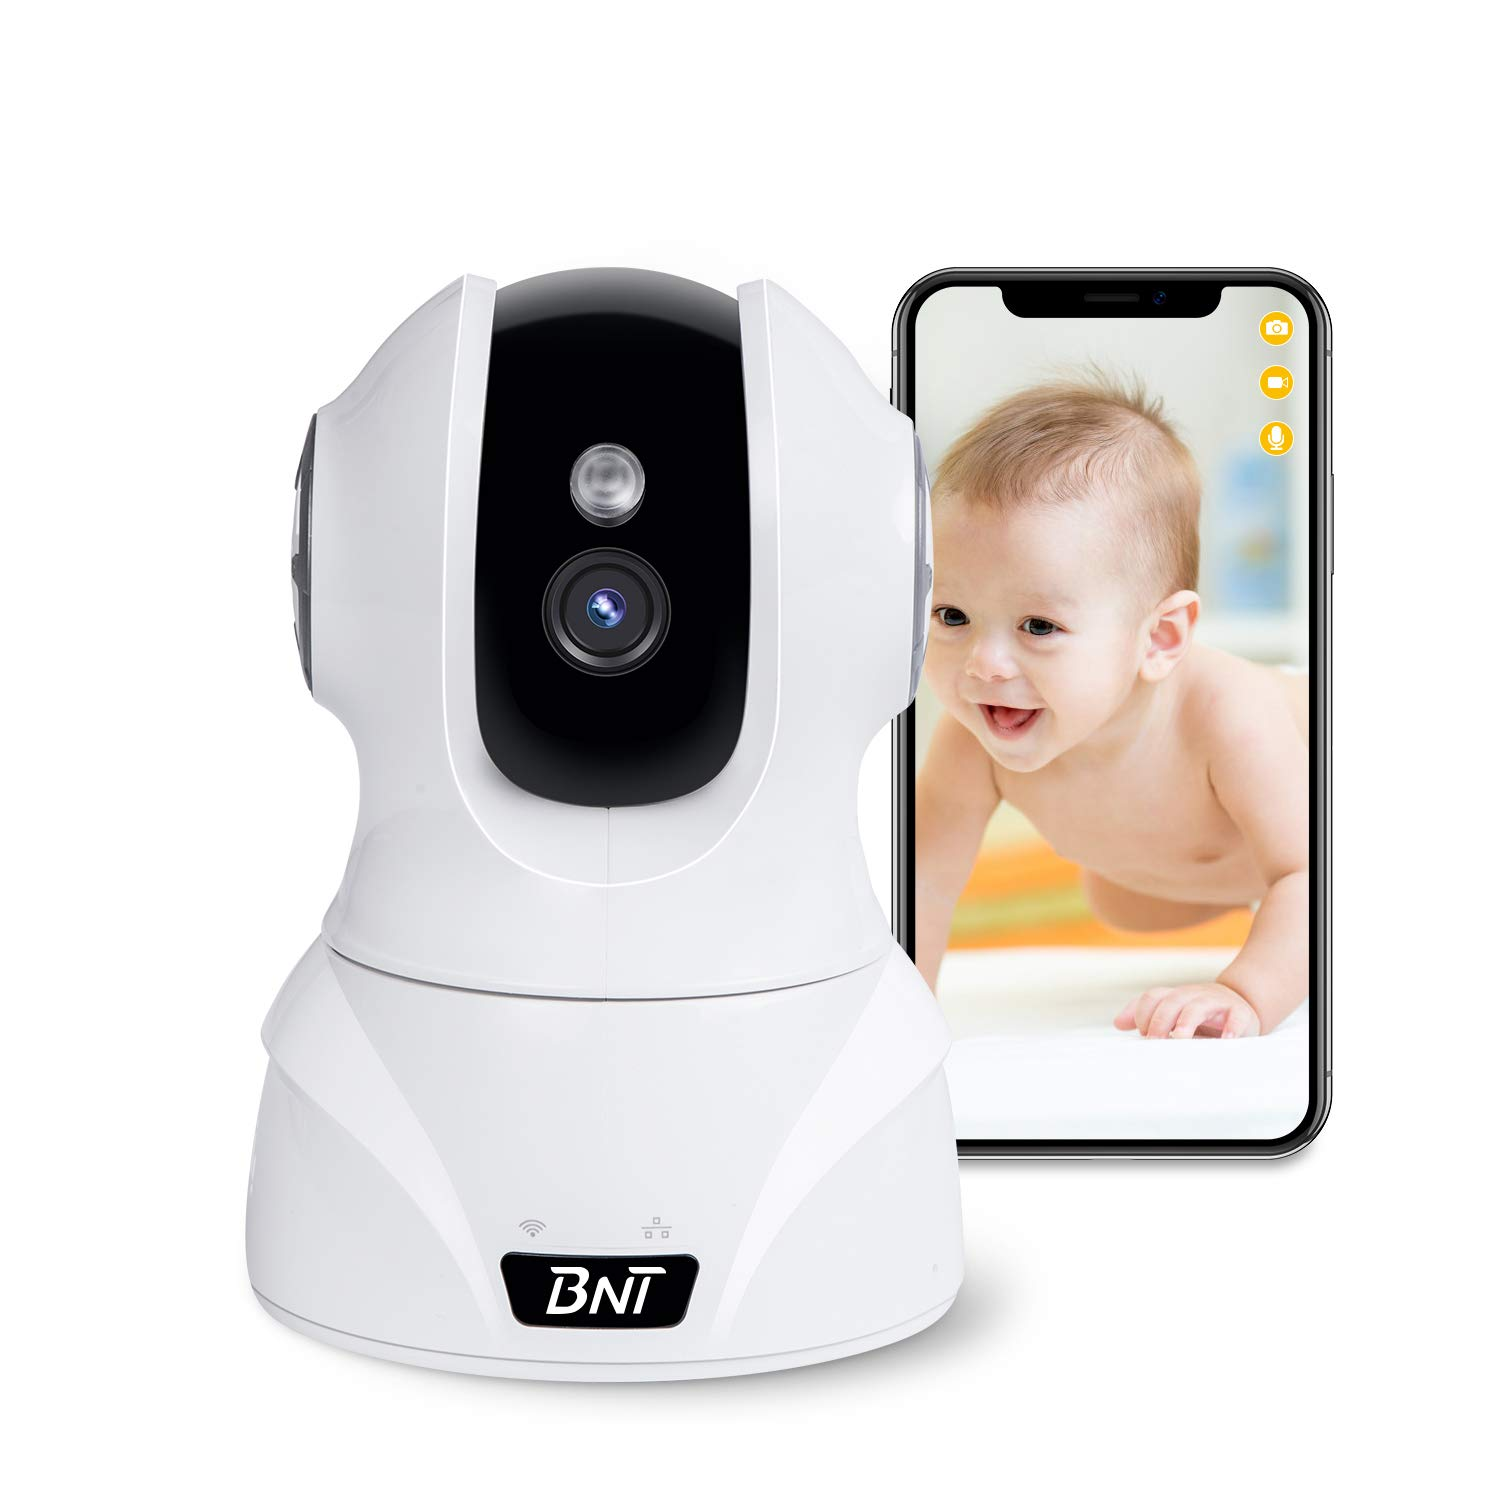 Security Camera WiFi IP Camera, BNT HD 1080P Home Wireless Baby/Pet Camera with Cloud Storage Two-Way Audio Motion Detection Night Vision Remote Monitoring, Work With Alexa